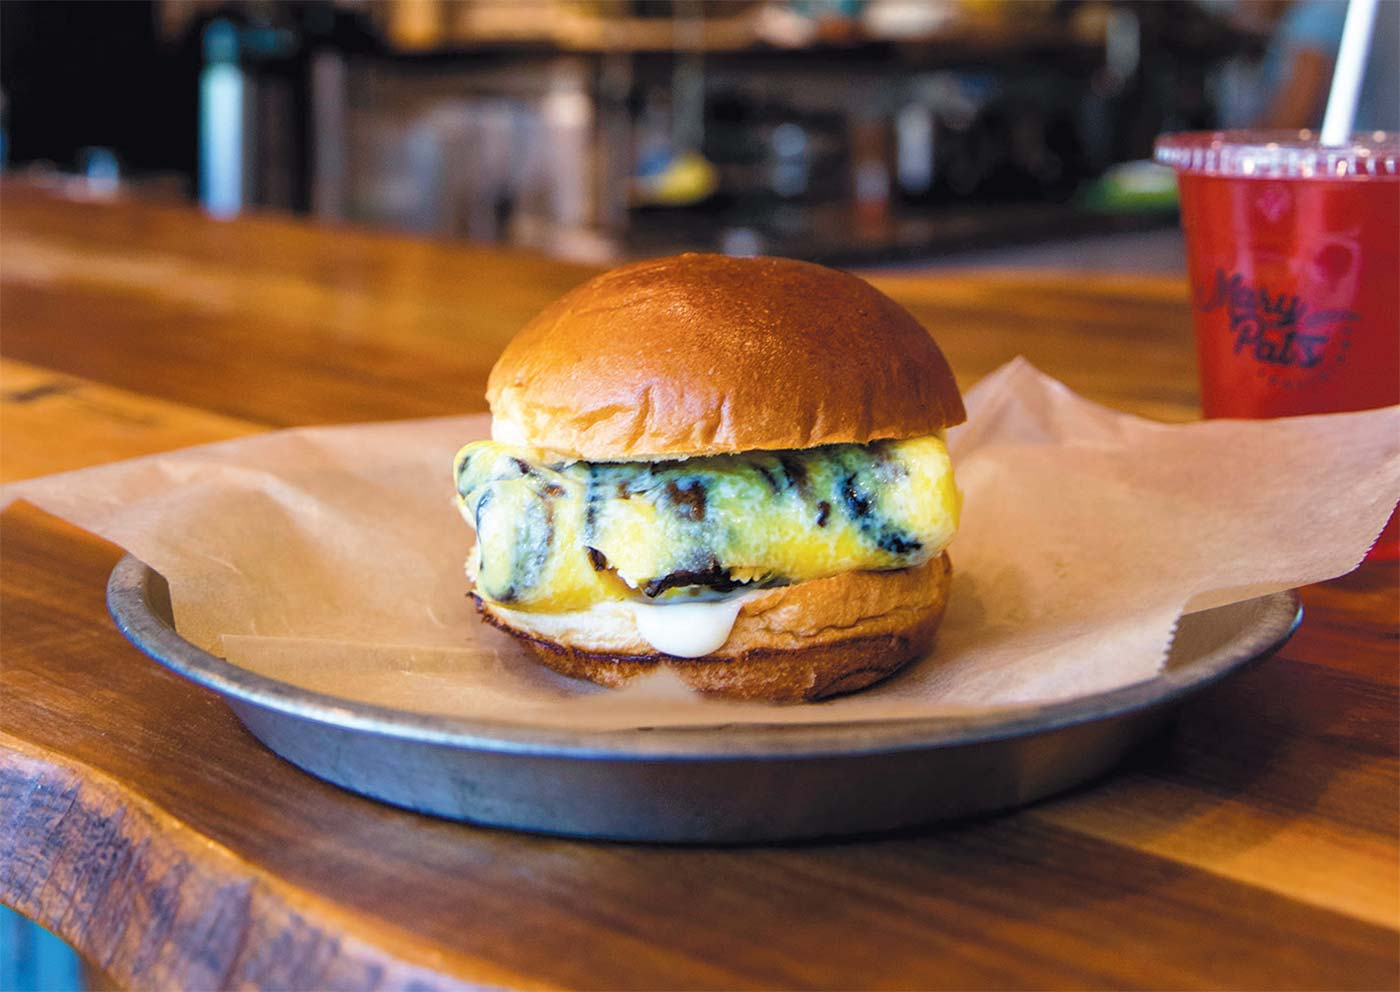 Roasted Shroom Egg Sandwich at Mary Pat's Provisions